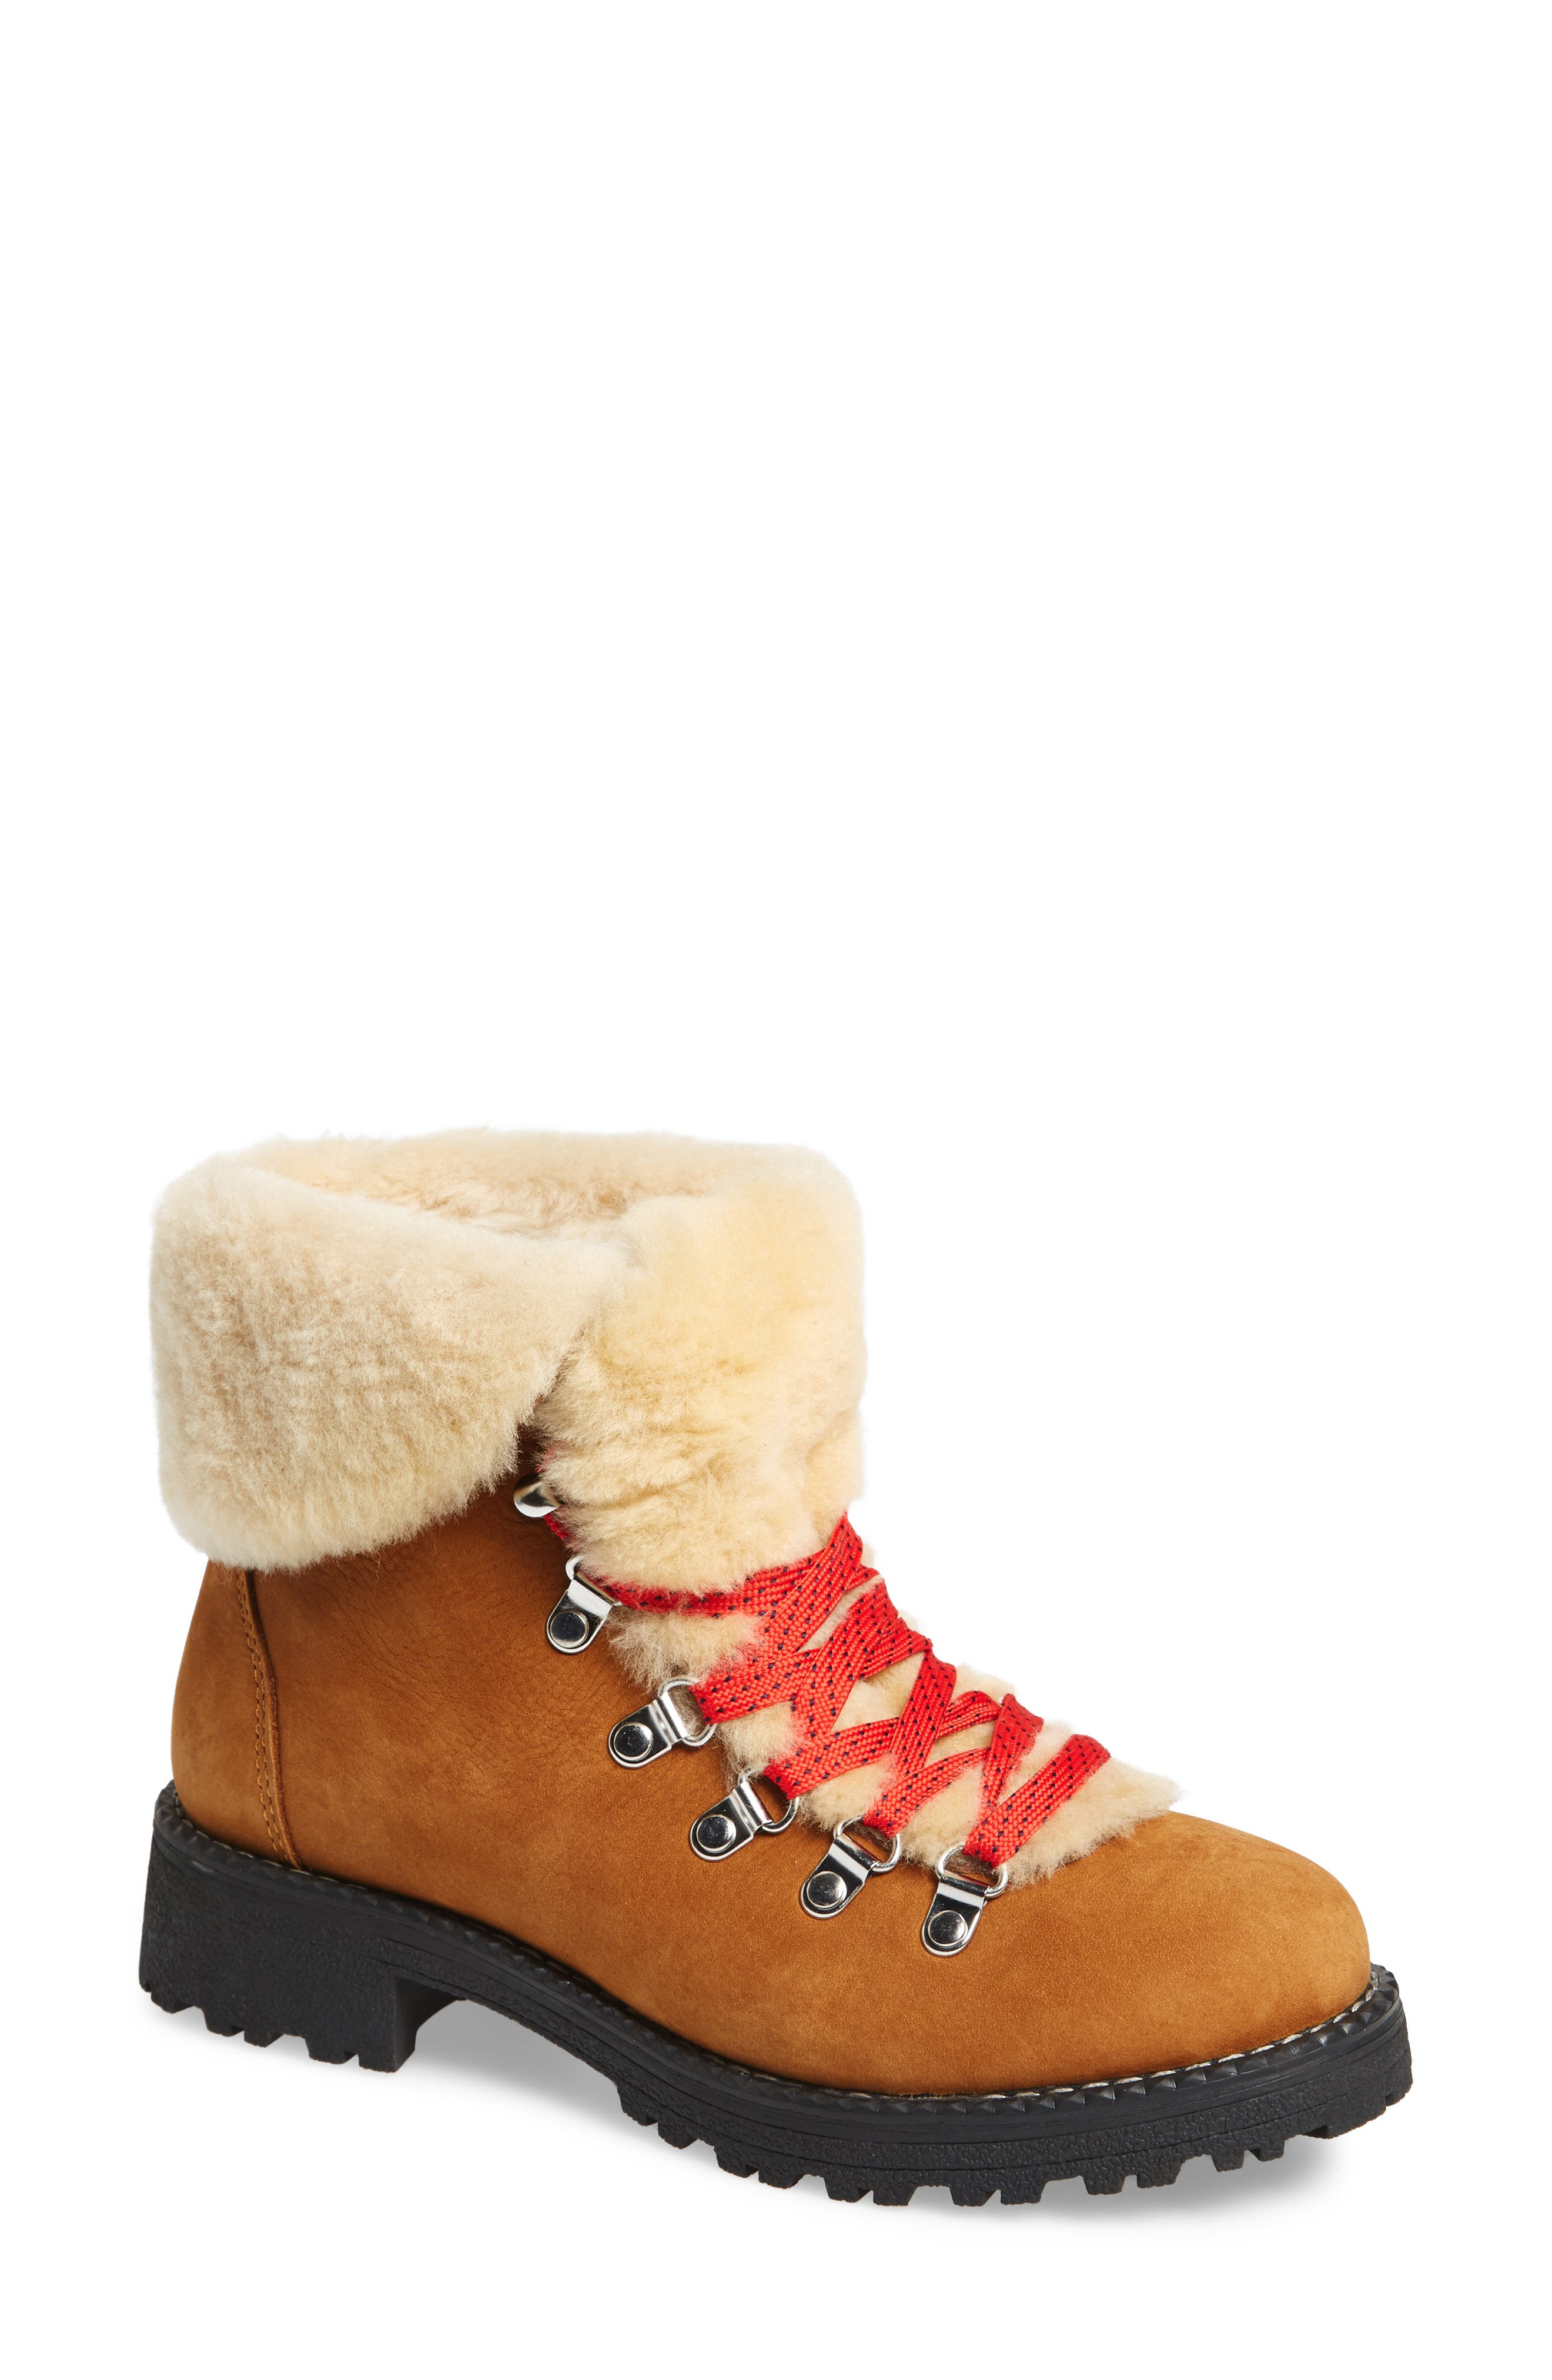 Main Image - J.Crew Nordic Genuine Shearling Cuff Winter Boot (Women)